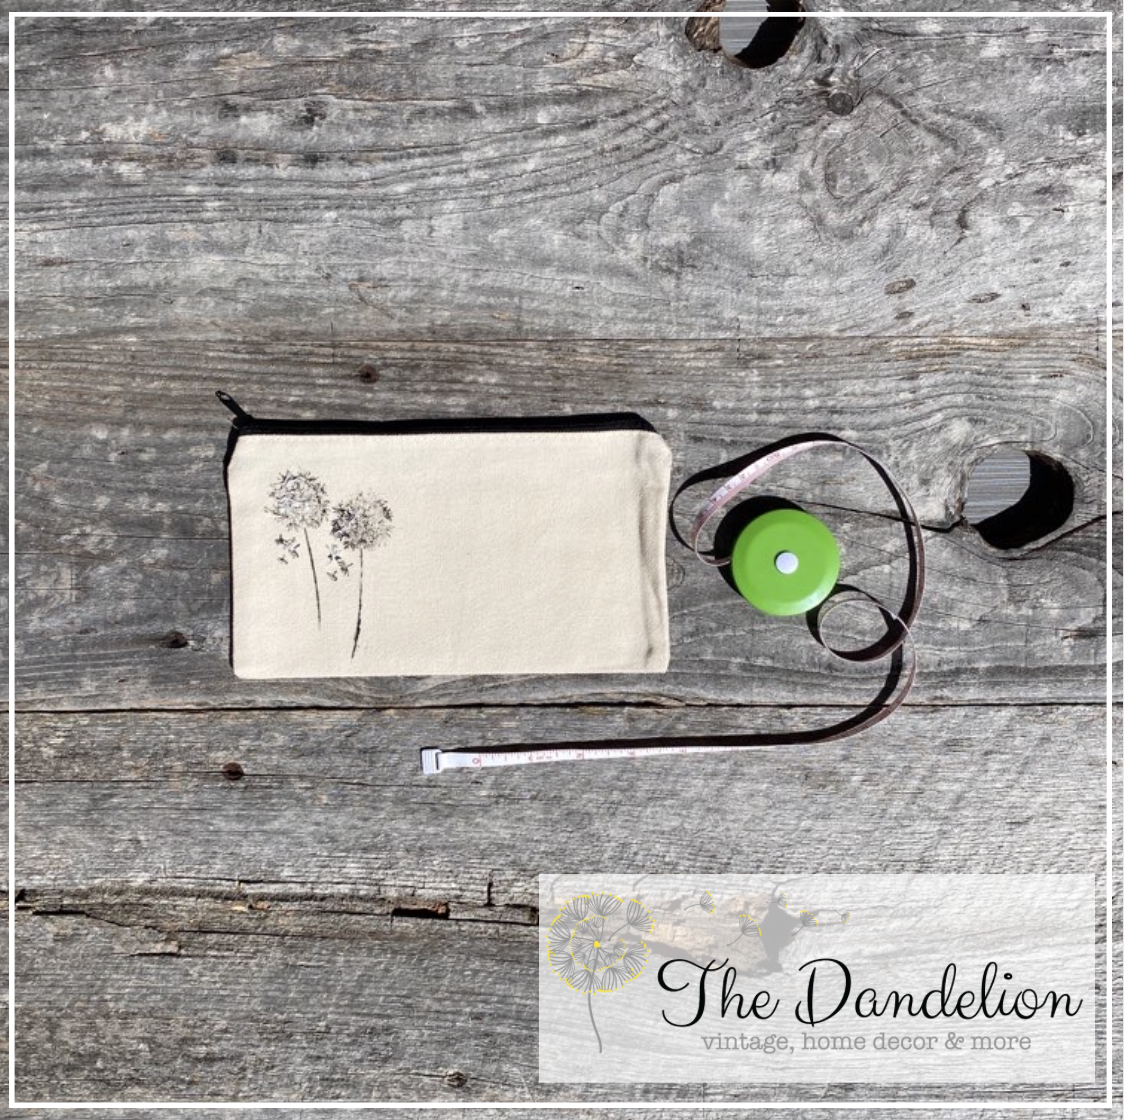 The Dandelion